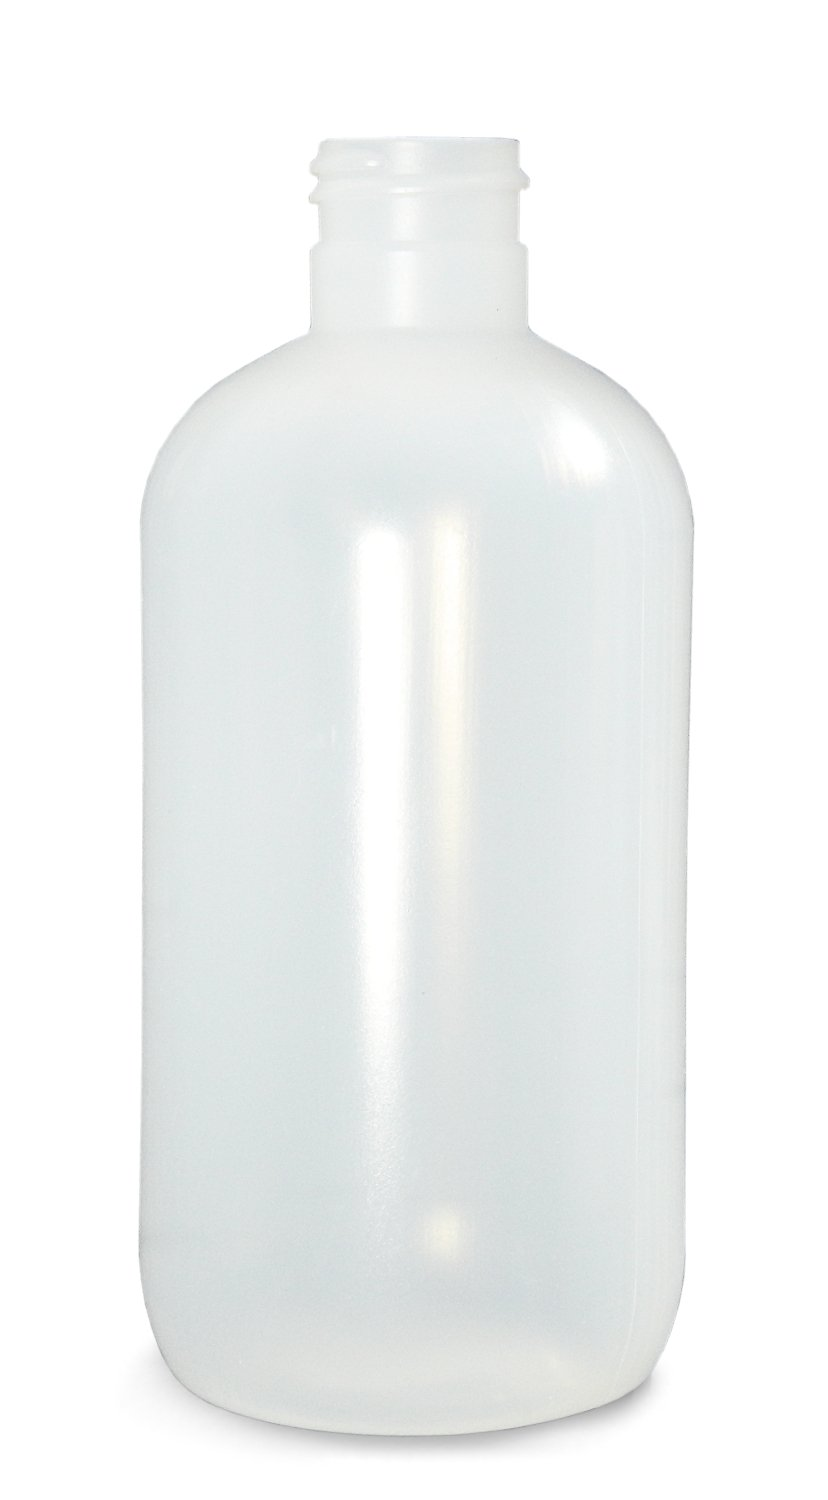 Qorpak PLA-03337 Natural LDPE Boston Round Bottle with 28-400 Neck Finish Case of 140 16oz Capacity 79mm OD x 154mm Height